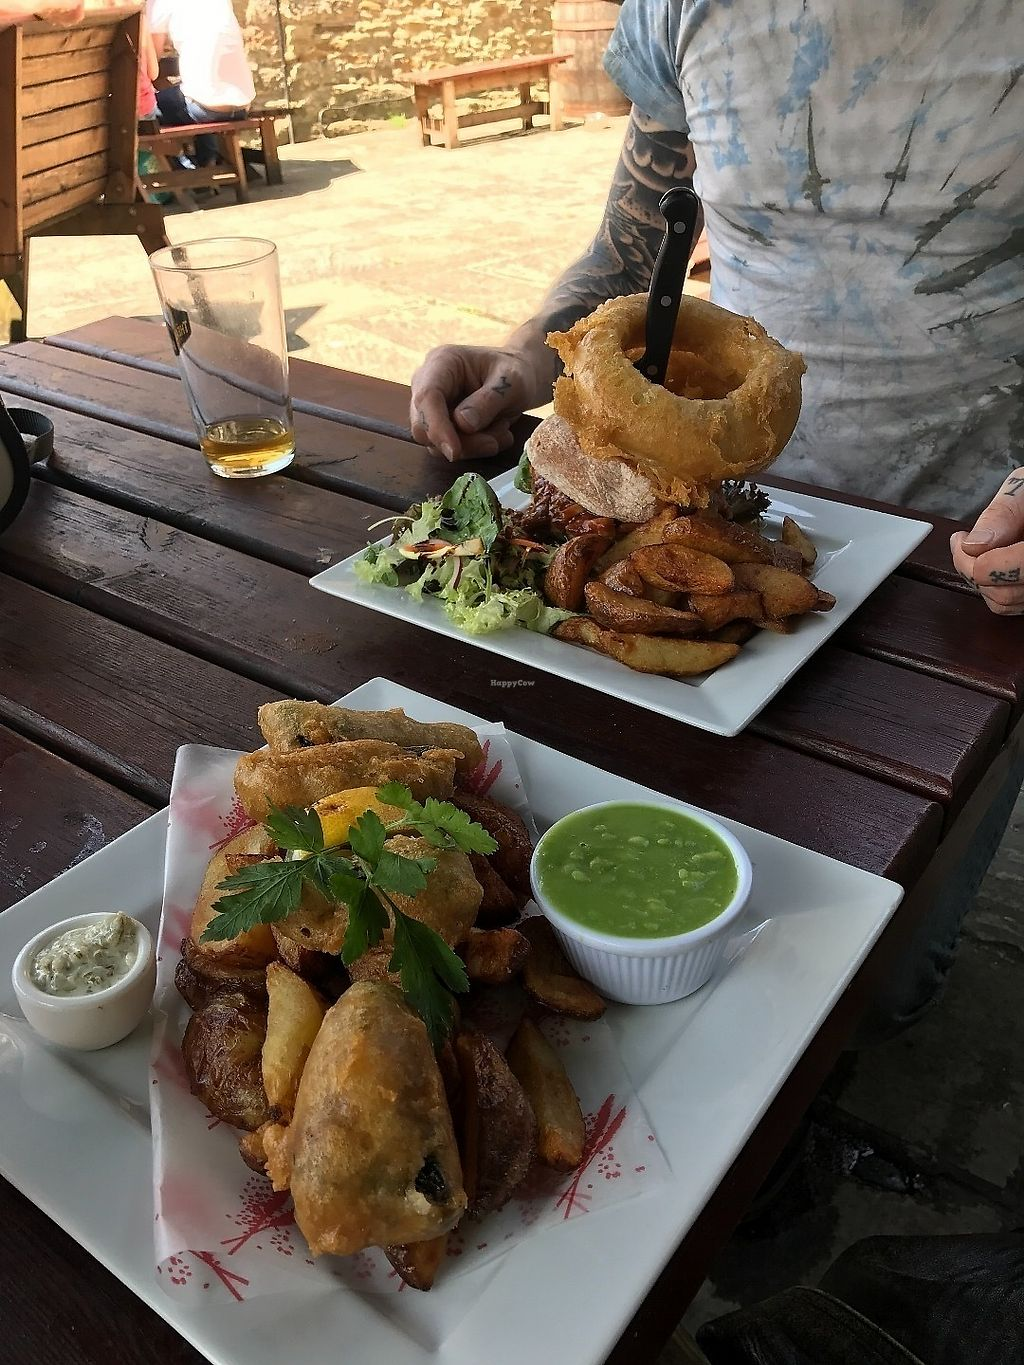 """Photo of The Castle Inn   by <a href=""""/members/profile/ClareBewick"""">ClareBewick</a> <br/>Tofish & chips and Pulled pork style falafel burger <br/> June 19, 2017  - <a href='/contact/abuse/image/88054/271125'>Report</a>"""